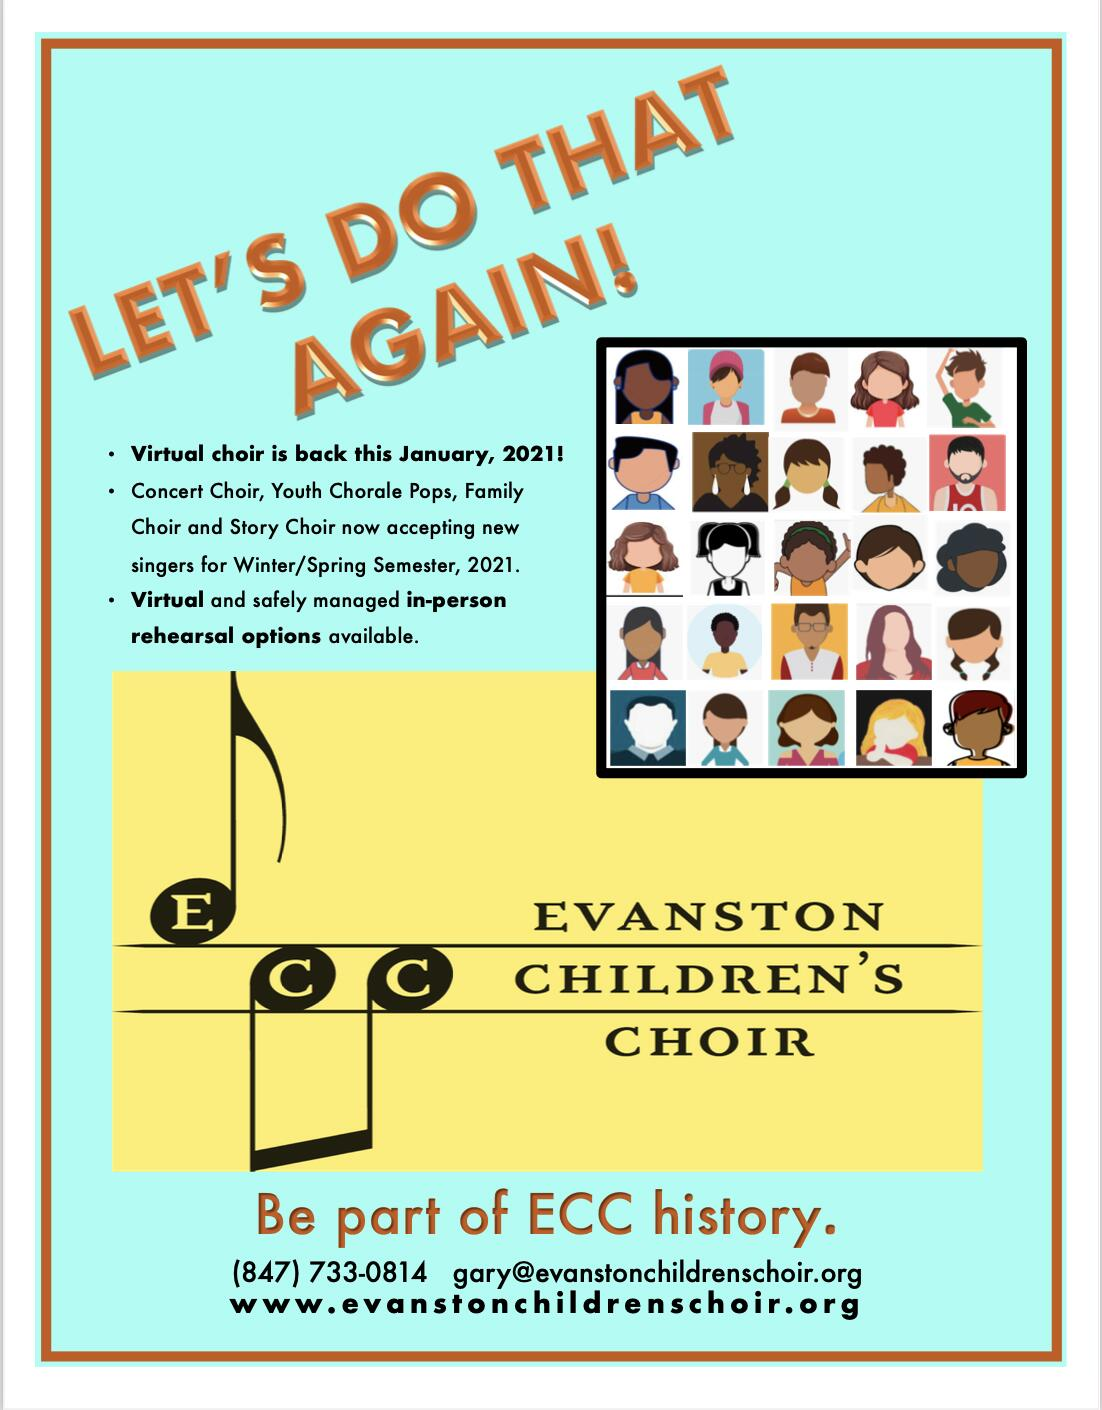 Evanston Children's Choir